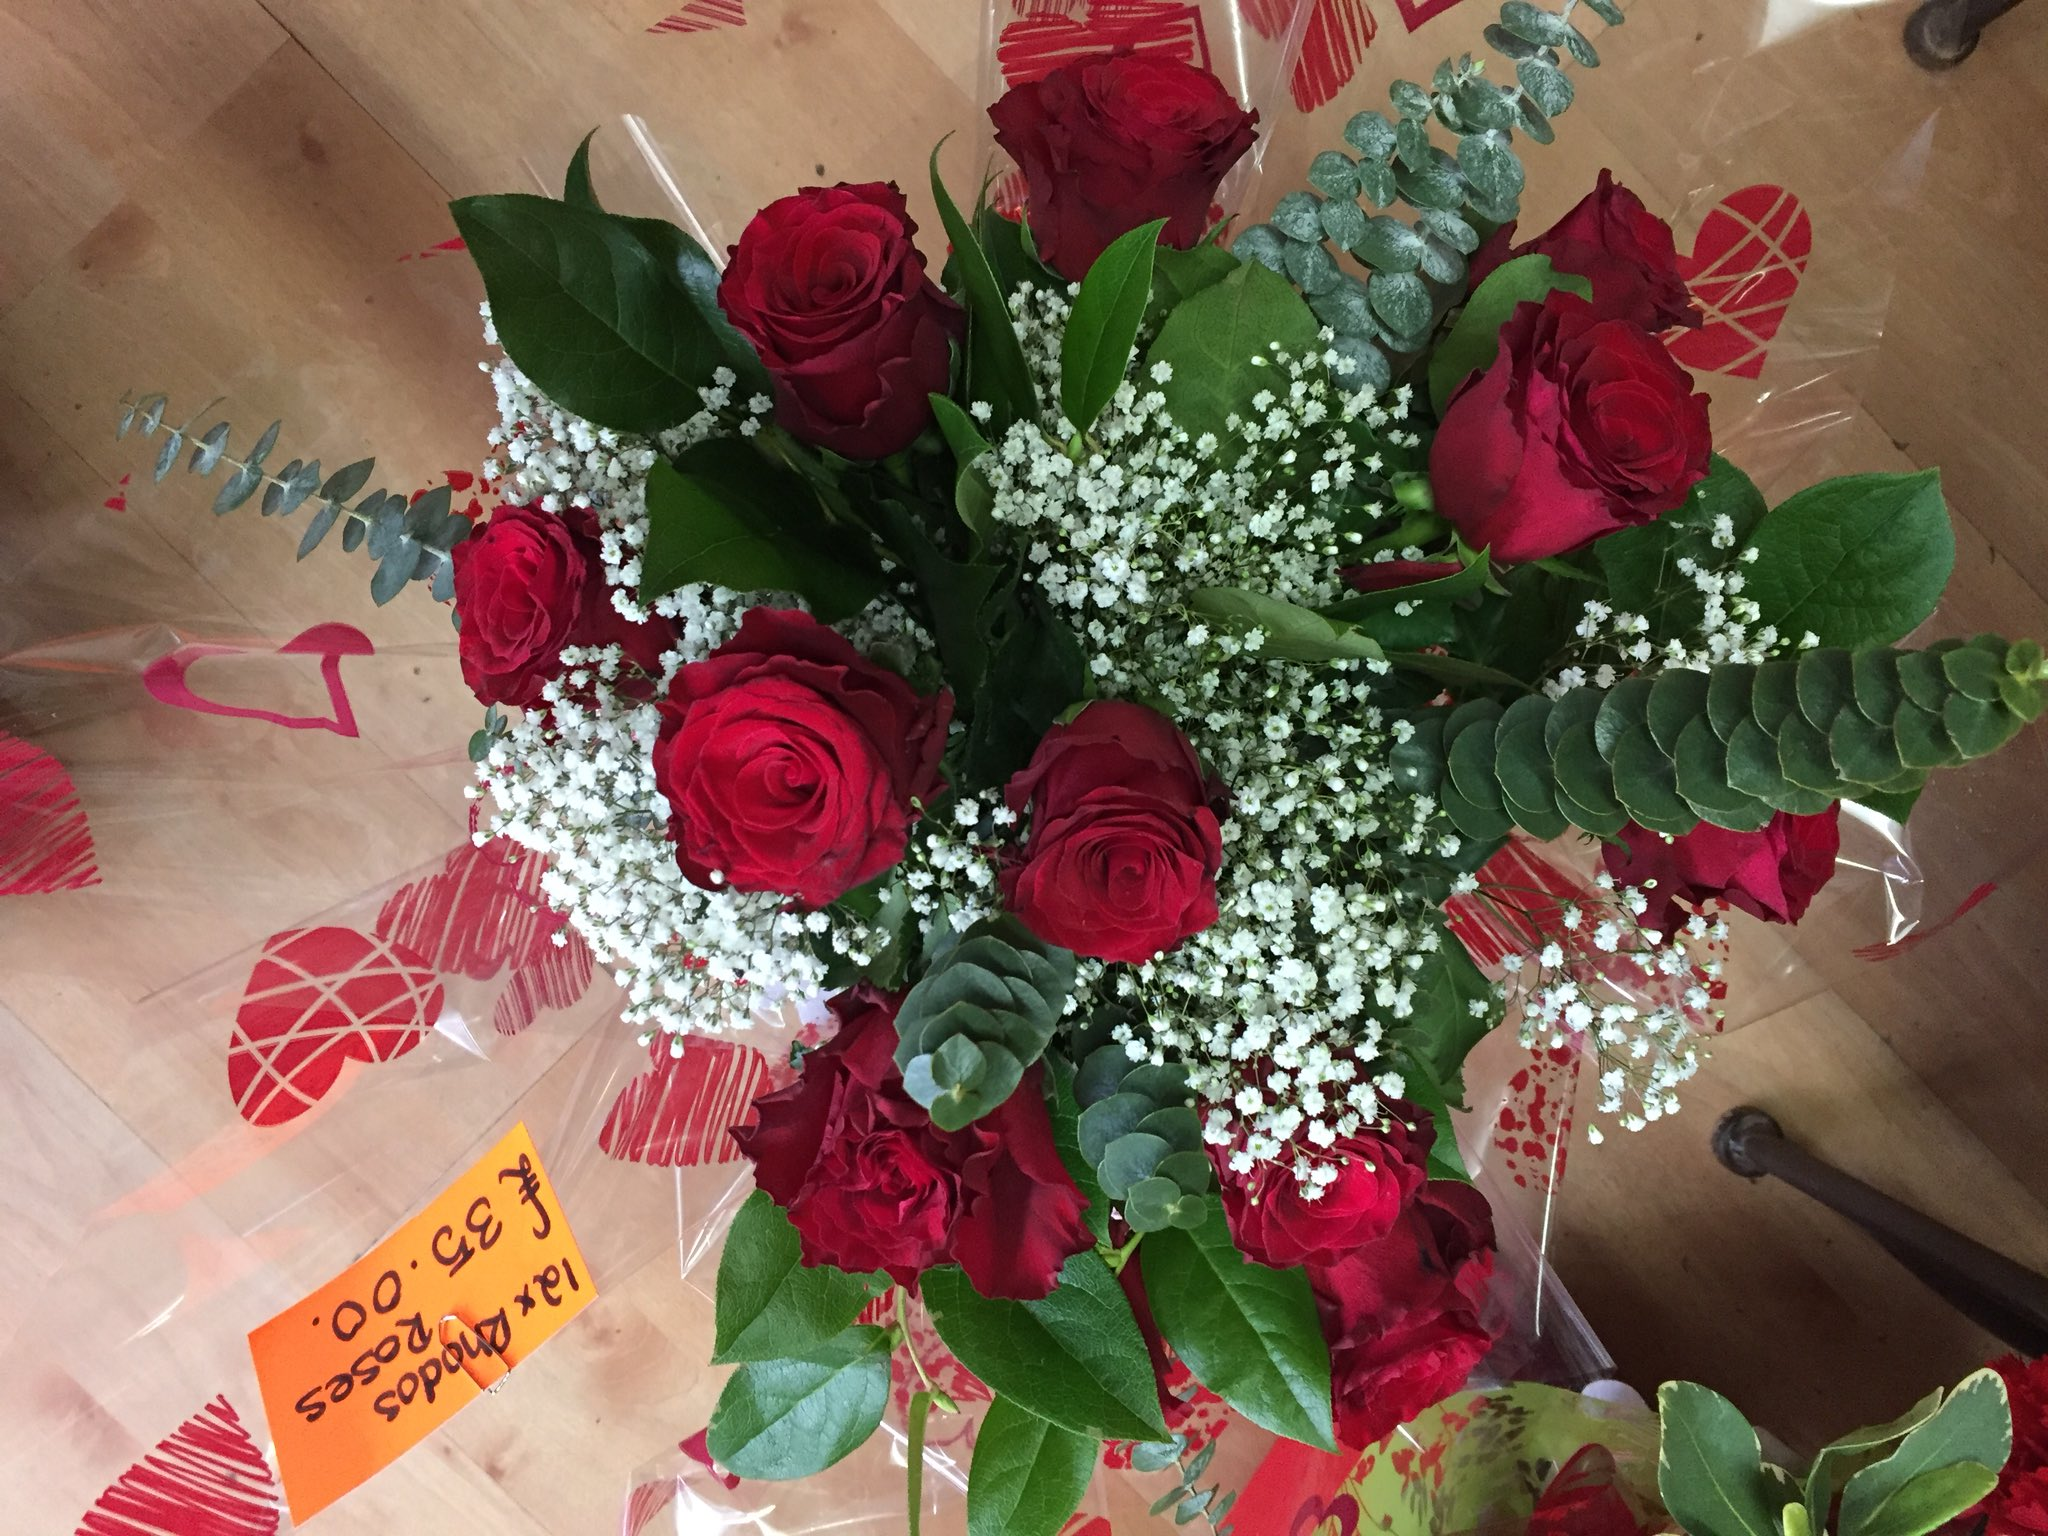 Reebees Florist On Twitter Rhodos Rose Bouquet Call Us To Order